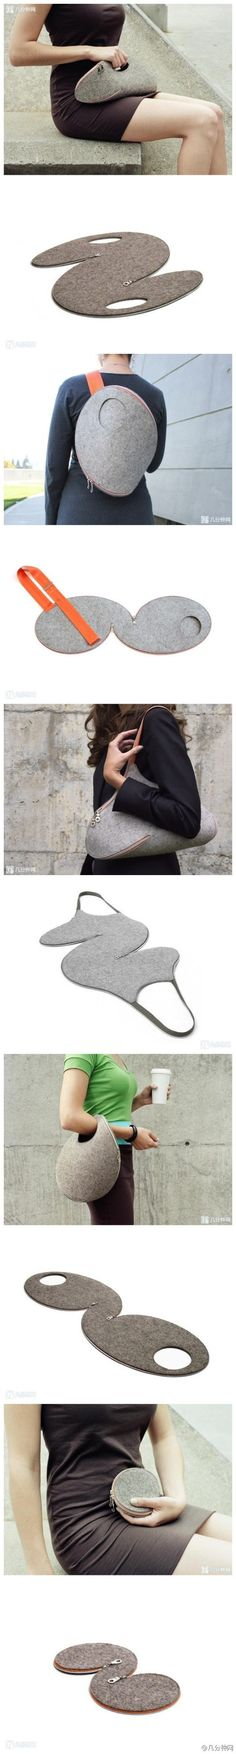 DIY Cool Lady Bag This is so cool, I have to try this!